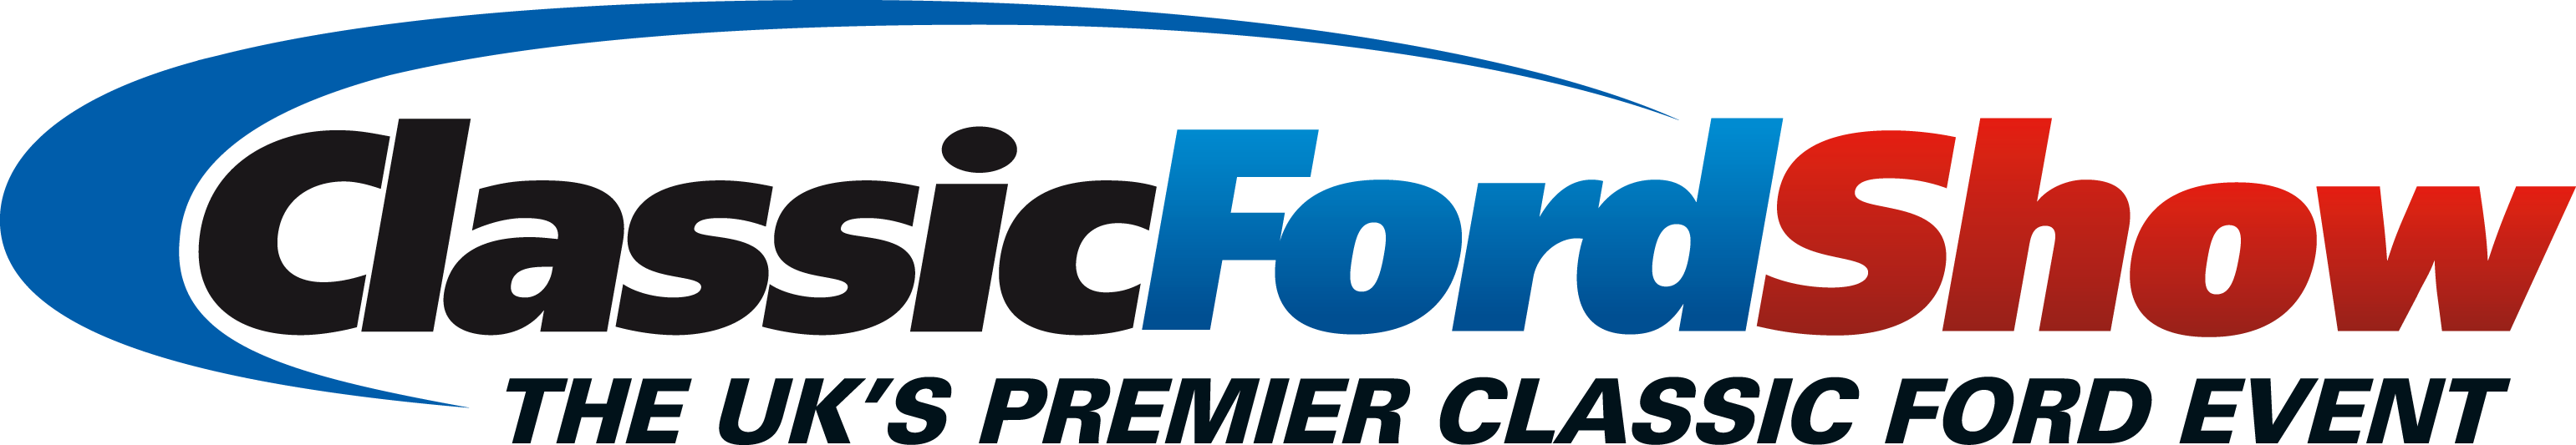 Classic-ford-show-logo-%26-strap_0.png